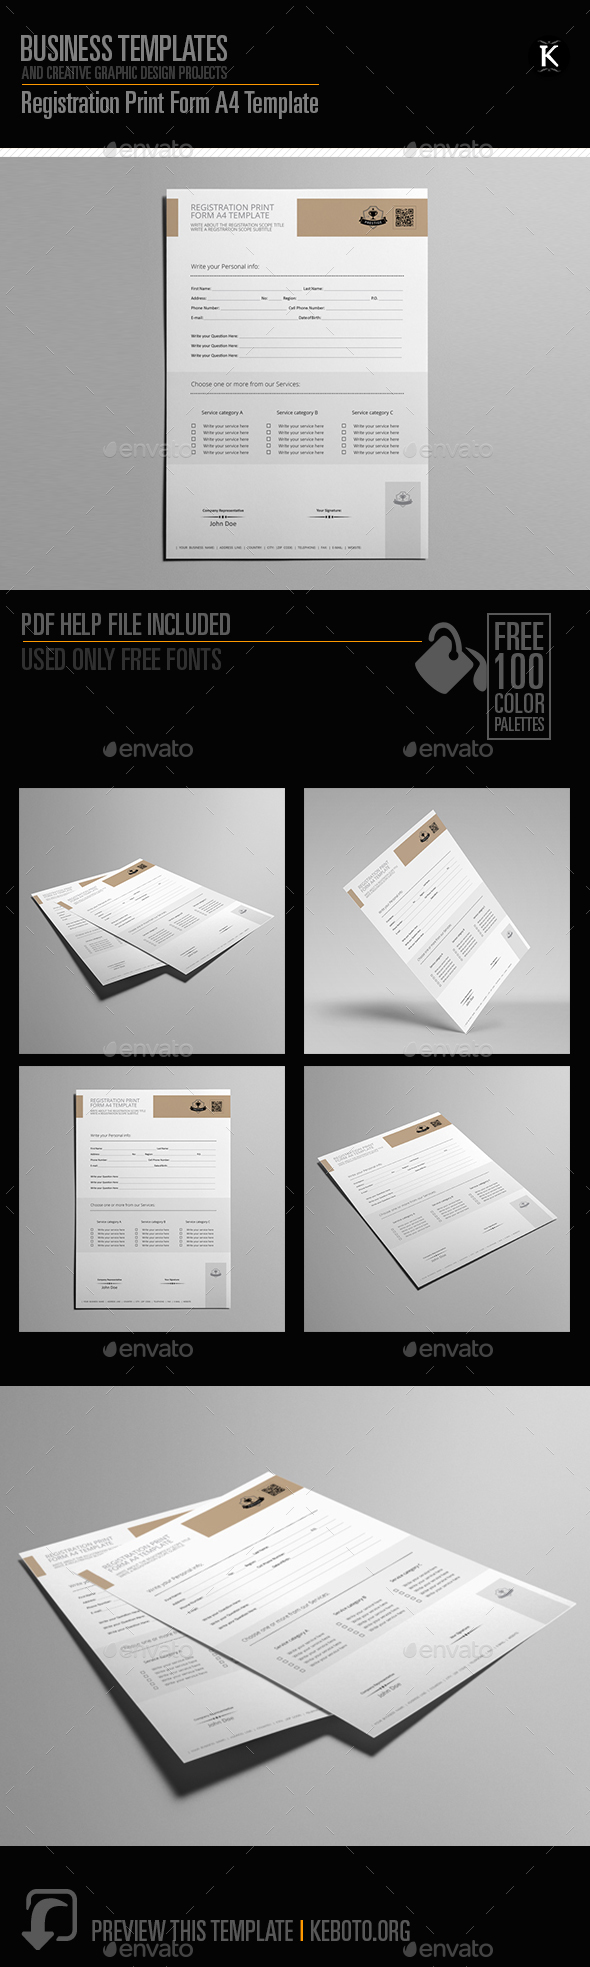 Registration Print Form A4 Template - Miscellaneous Print Templates